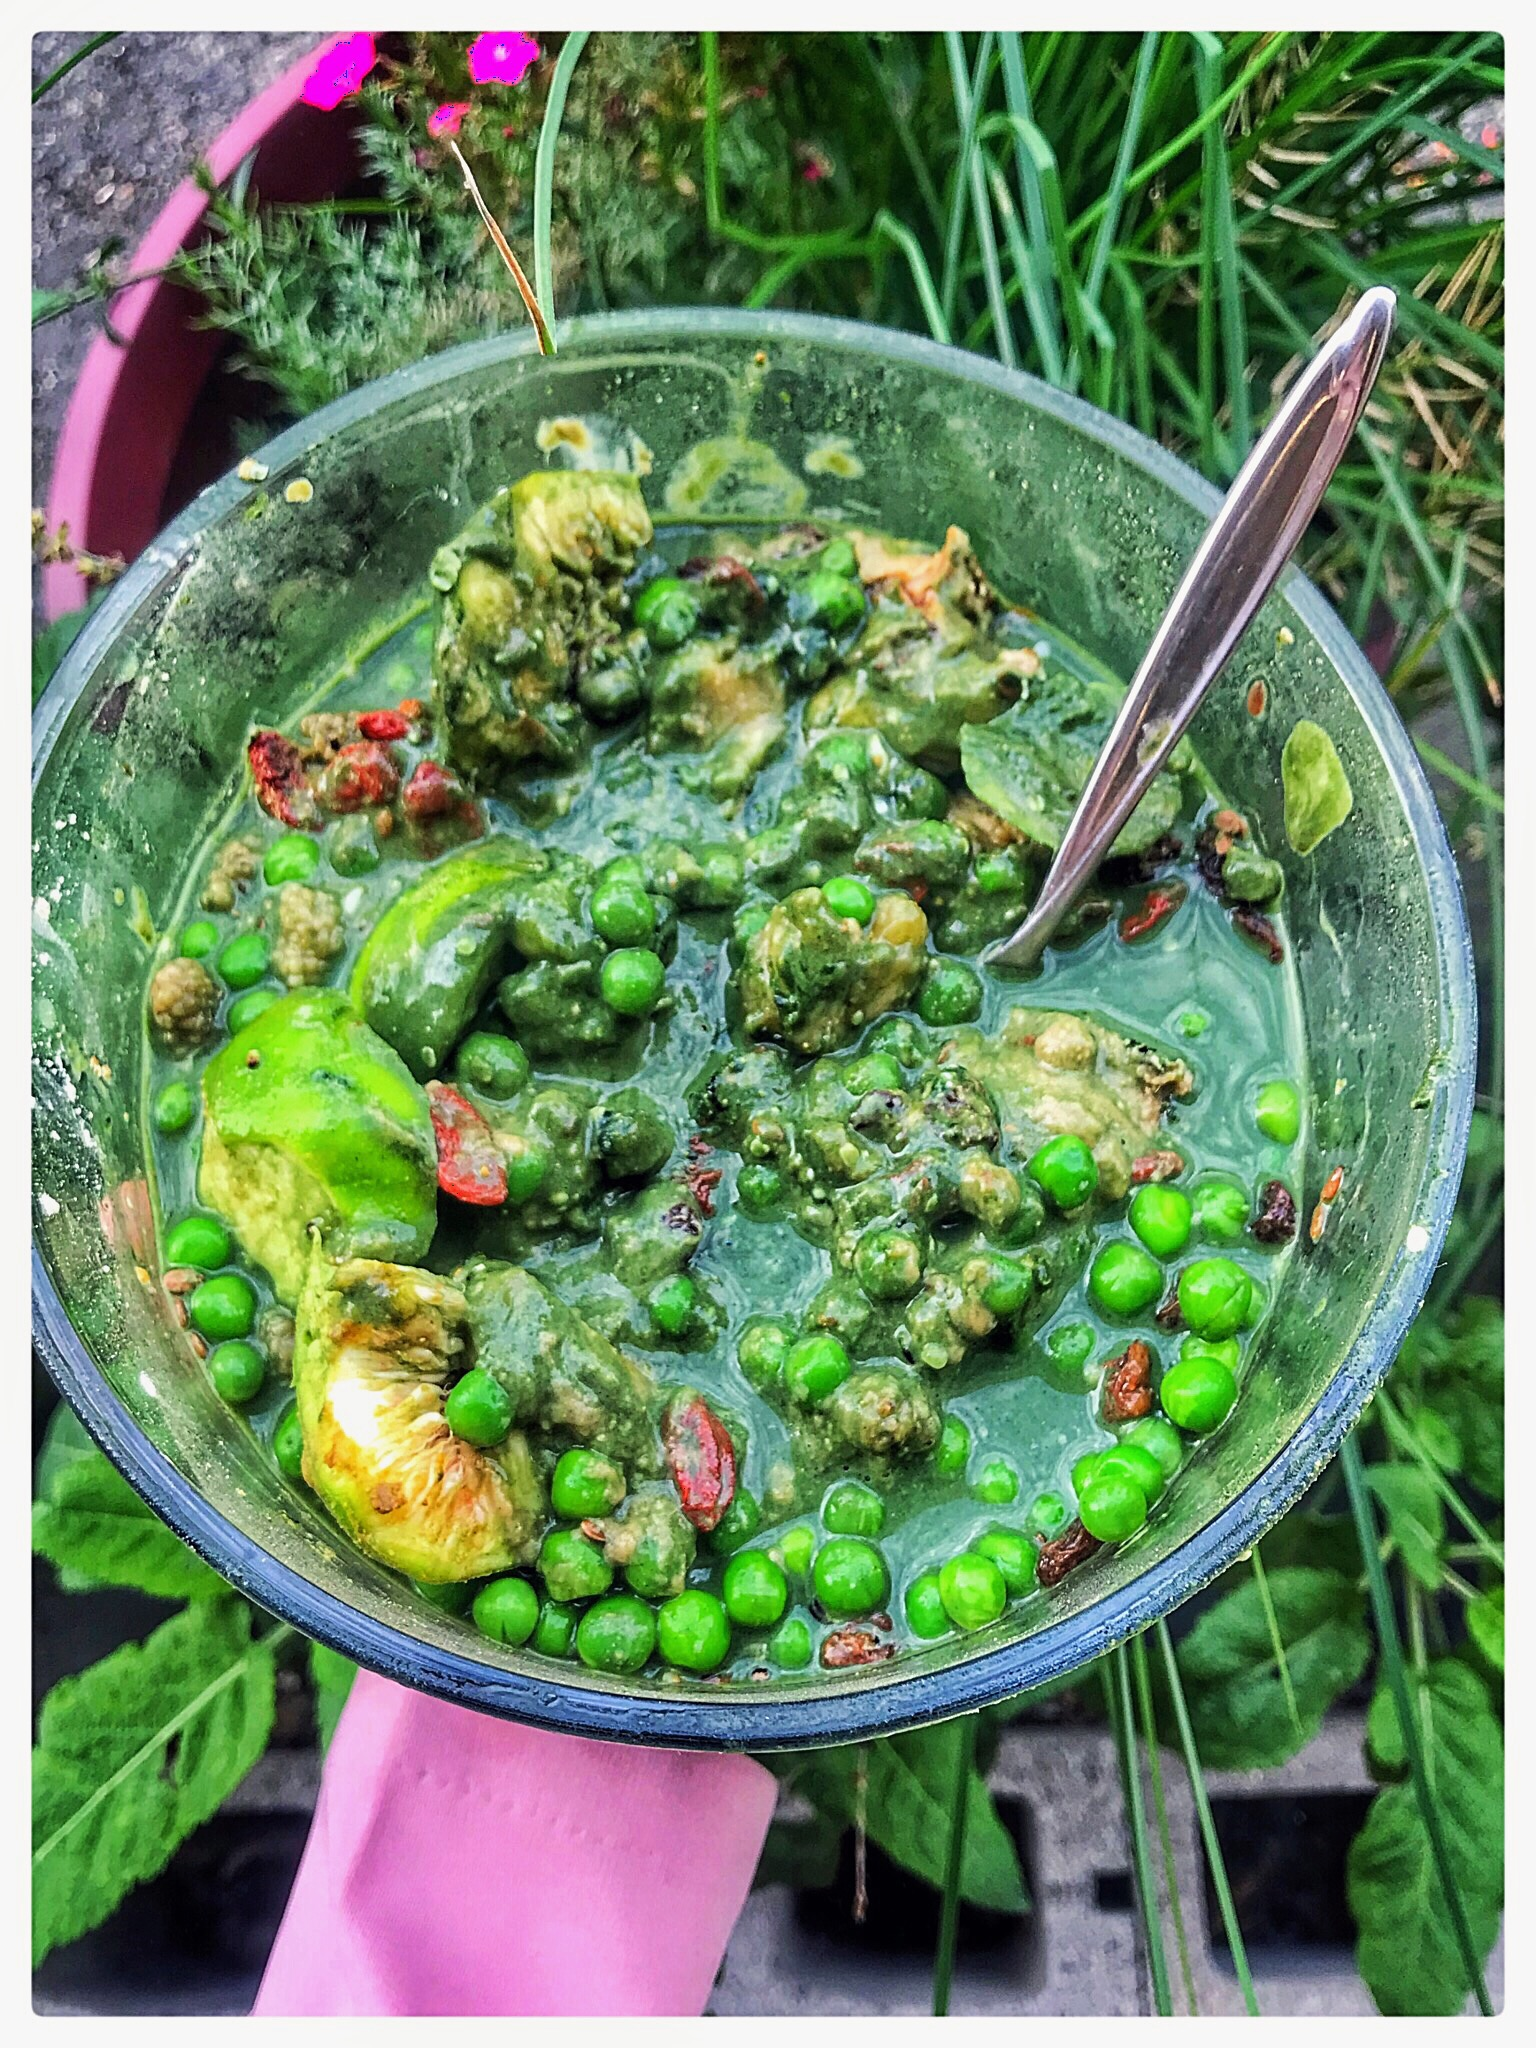 Green Monster Lunch: Portable and Satisfying!